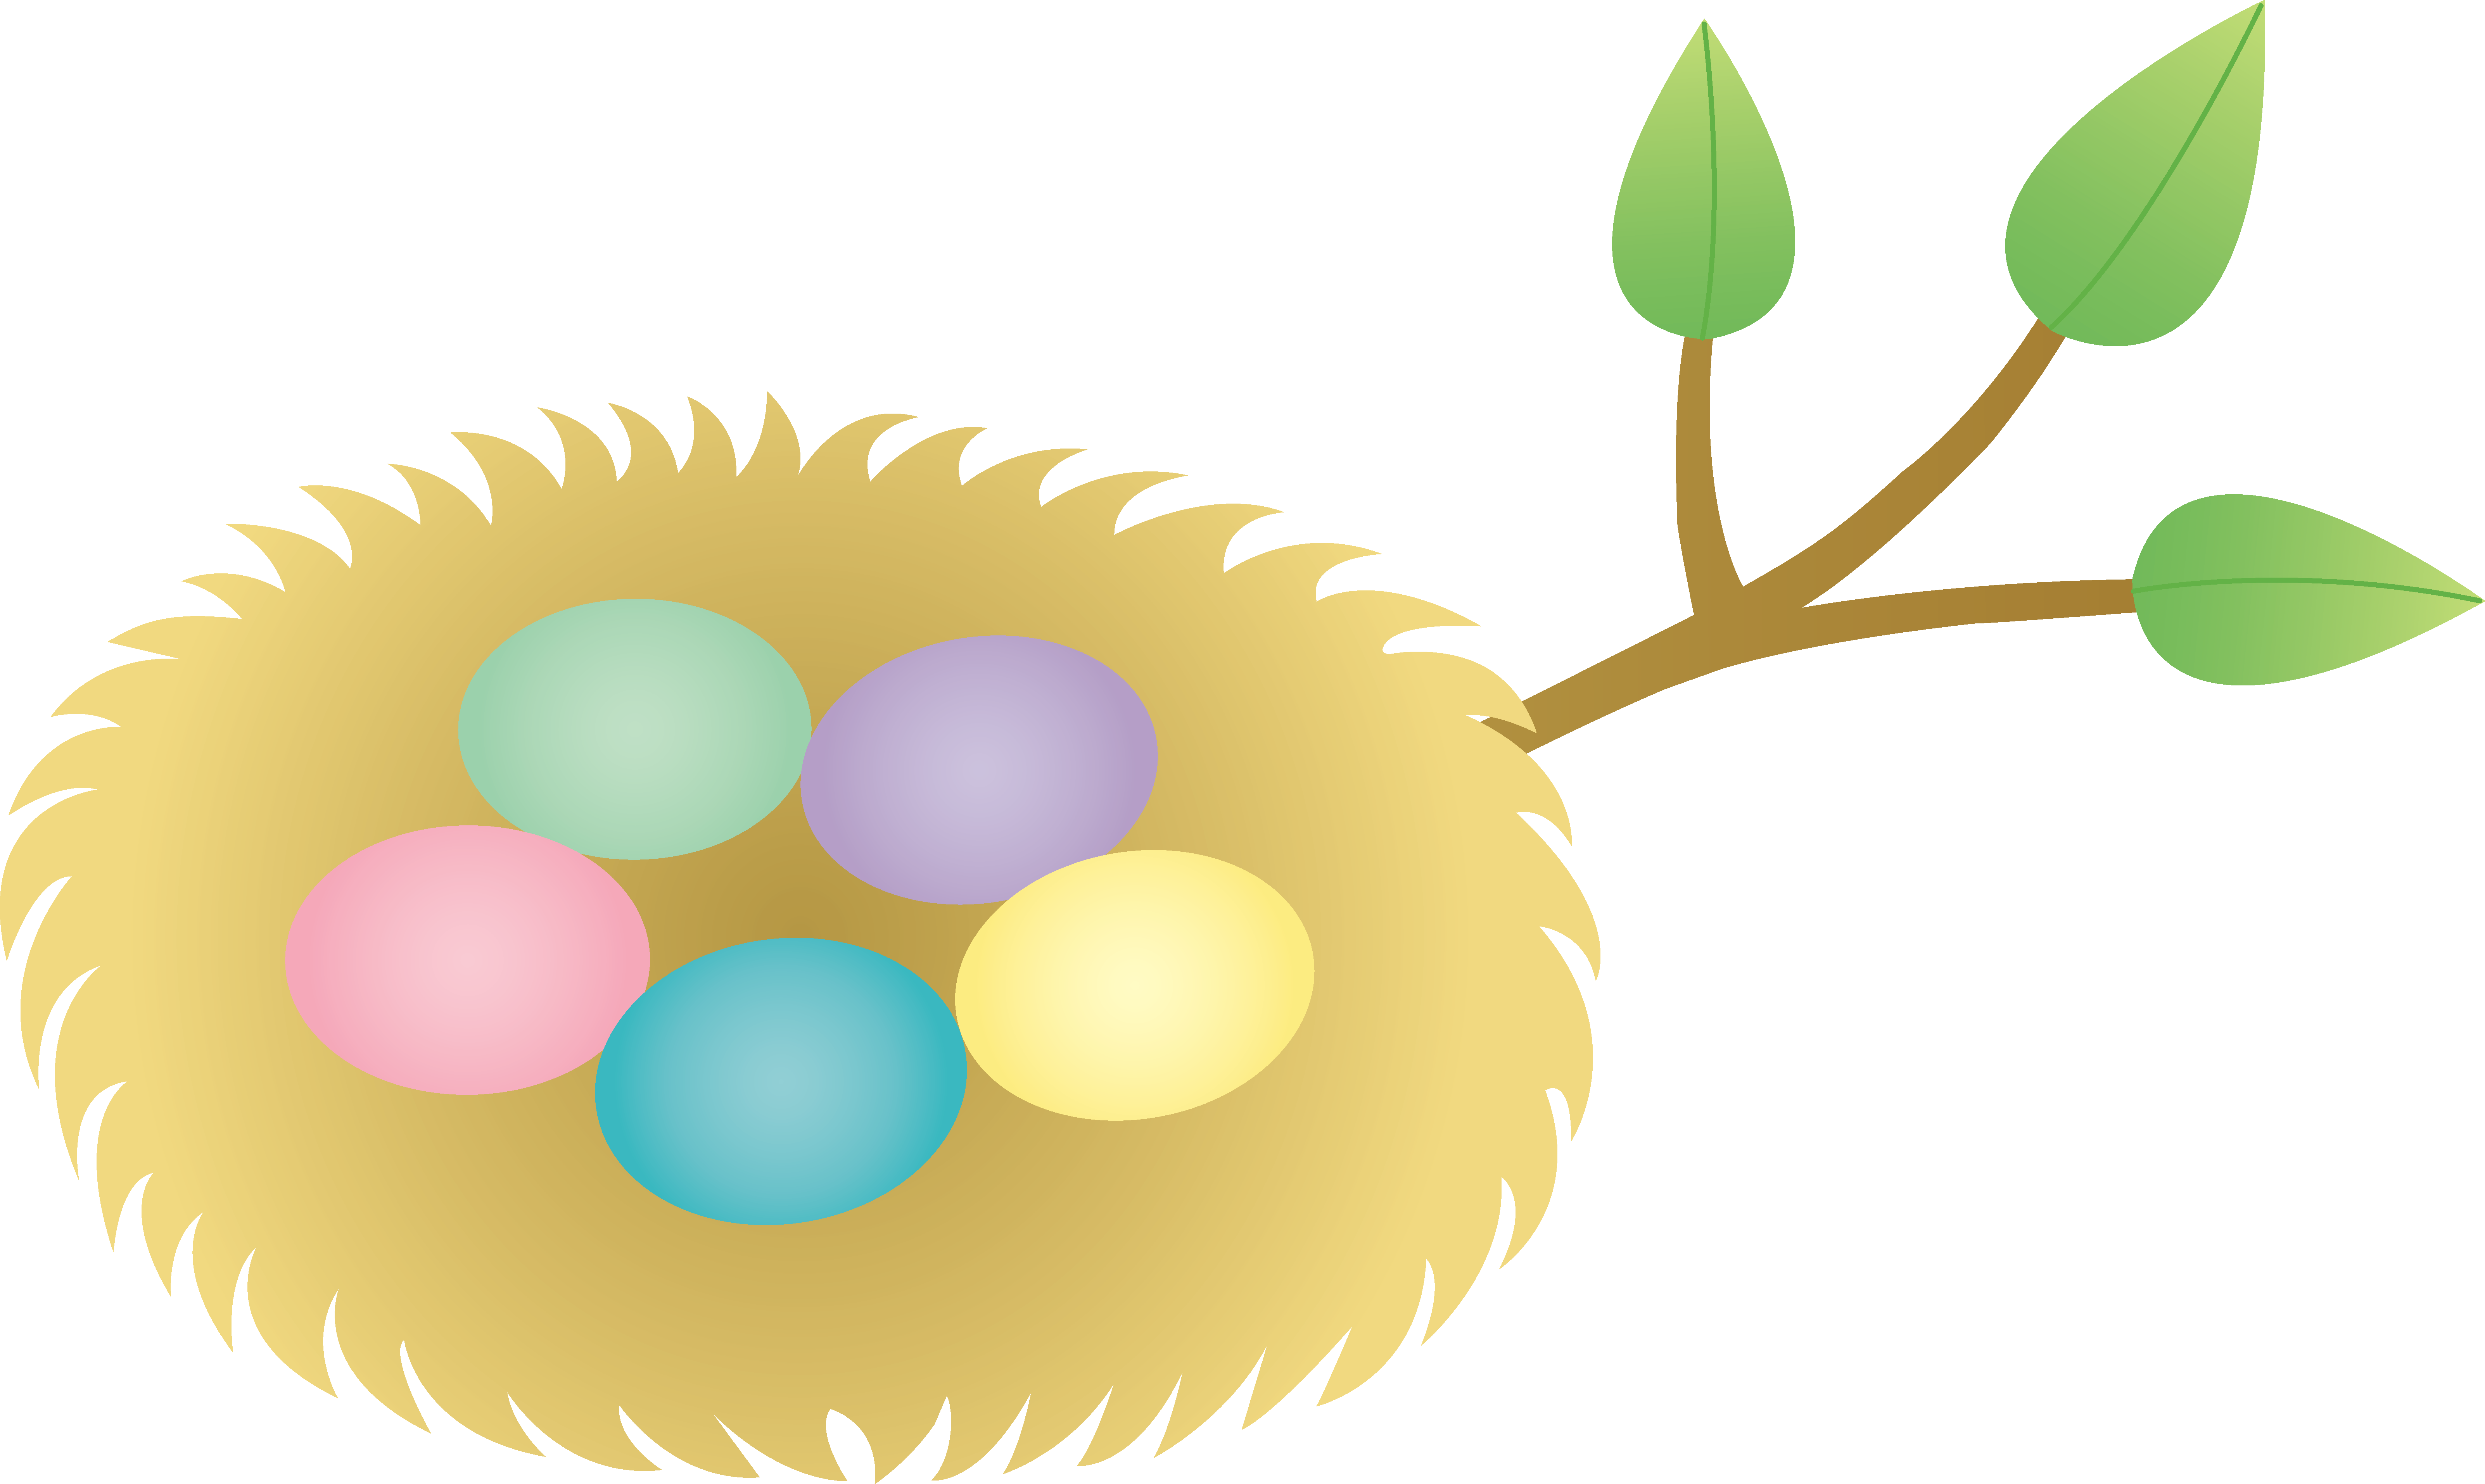 Bird nest in tree clipart png transparent download 28+ Collection of Bird Nest With Eggs Clipart | High quality, free ... png transparent download